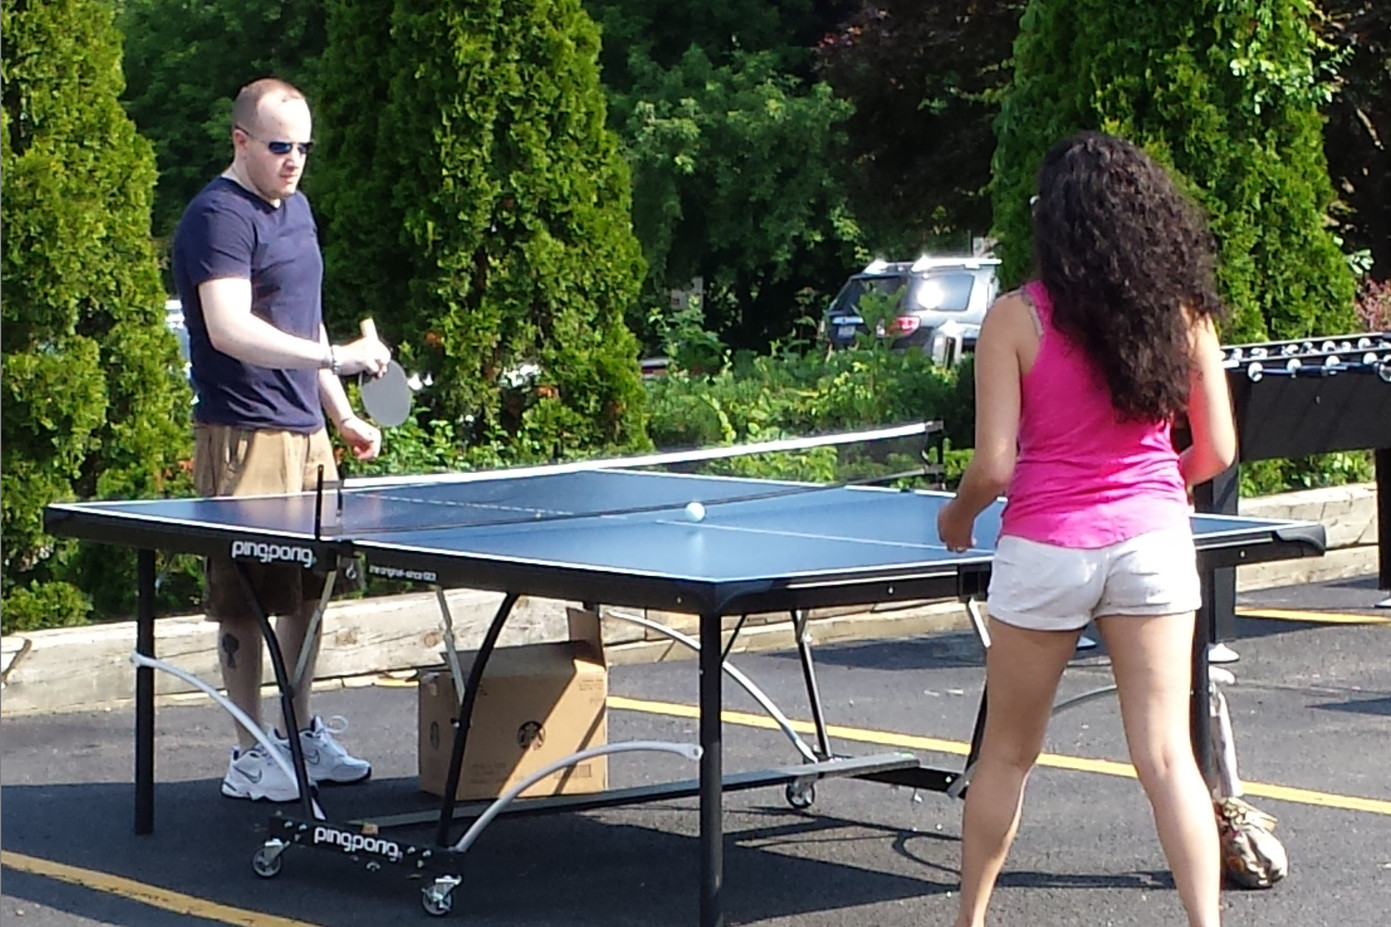 No-Contact-Table-Tennis-Game.jpg